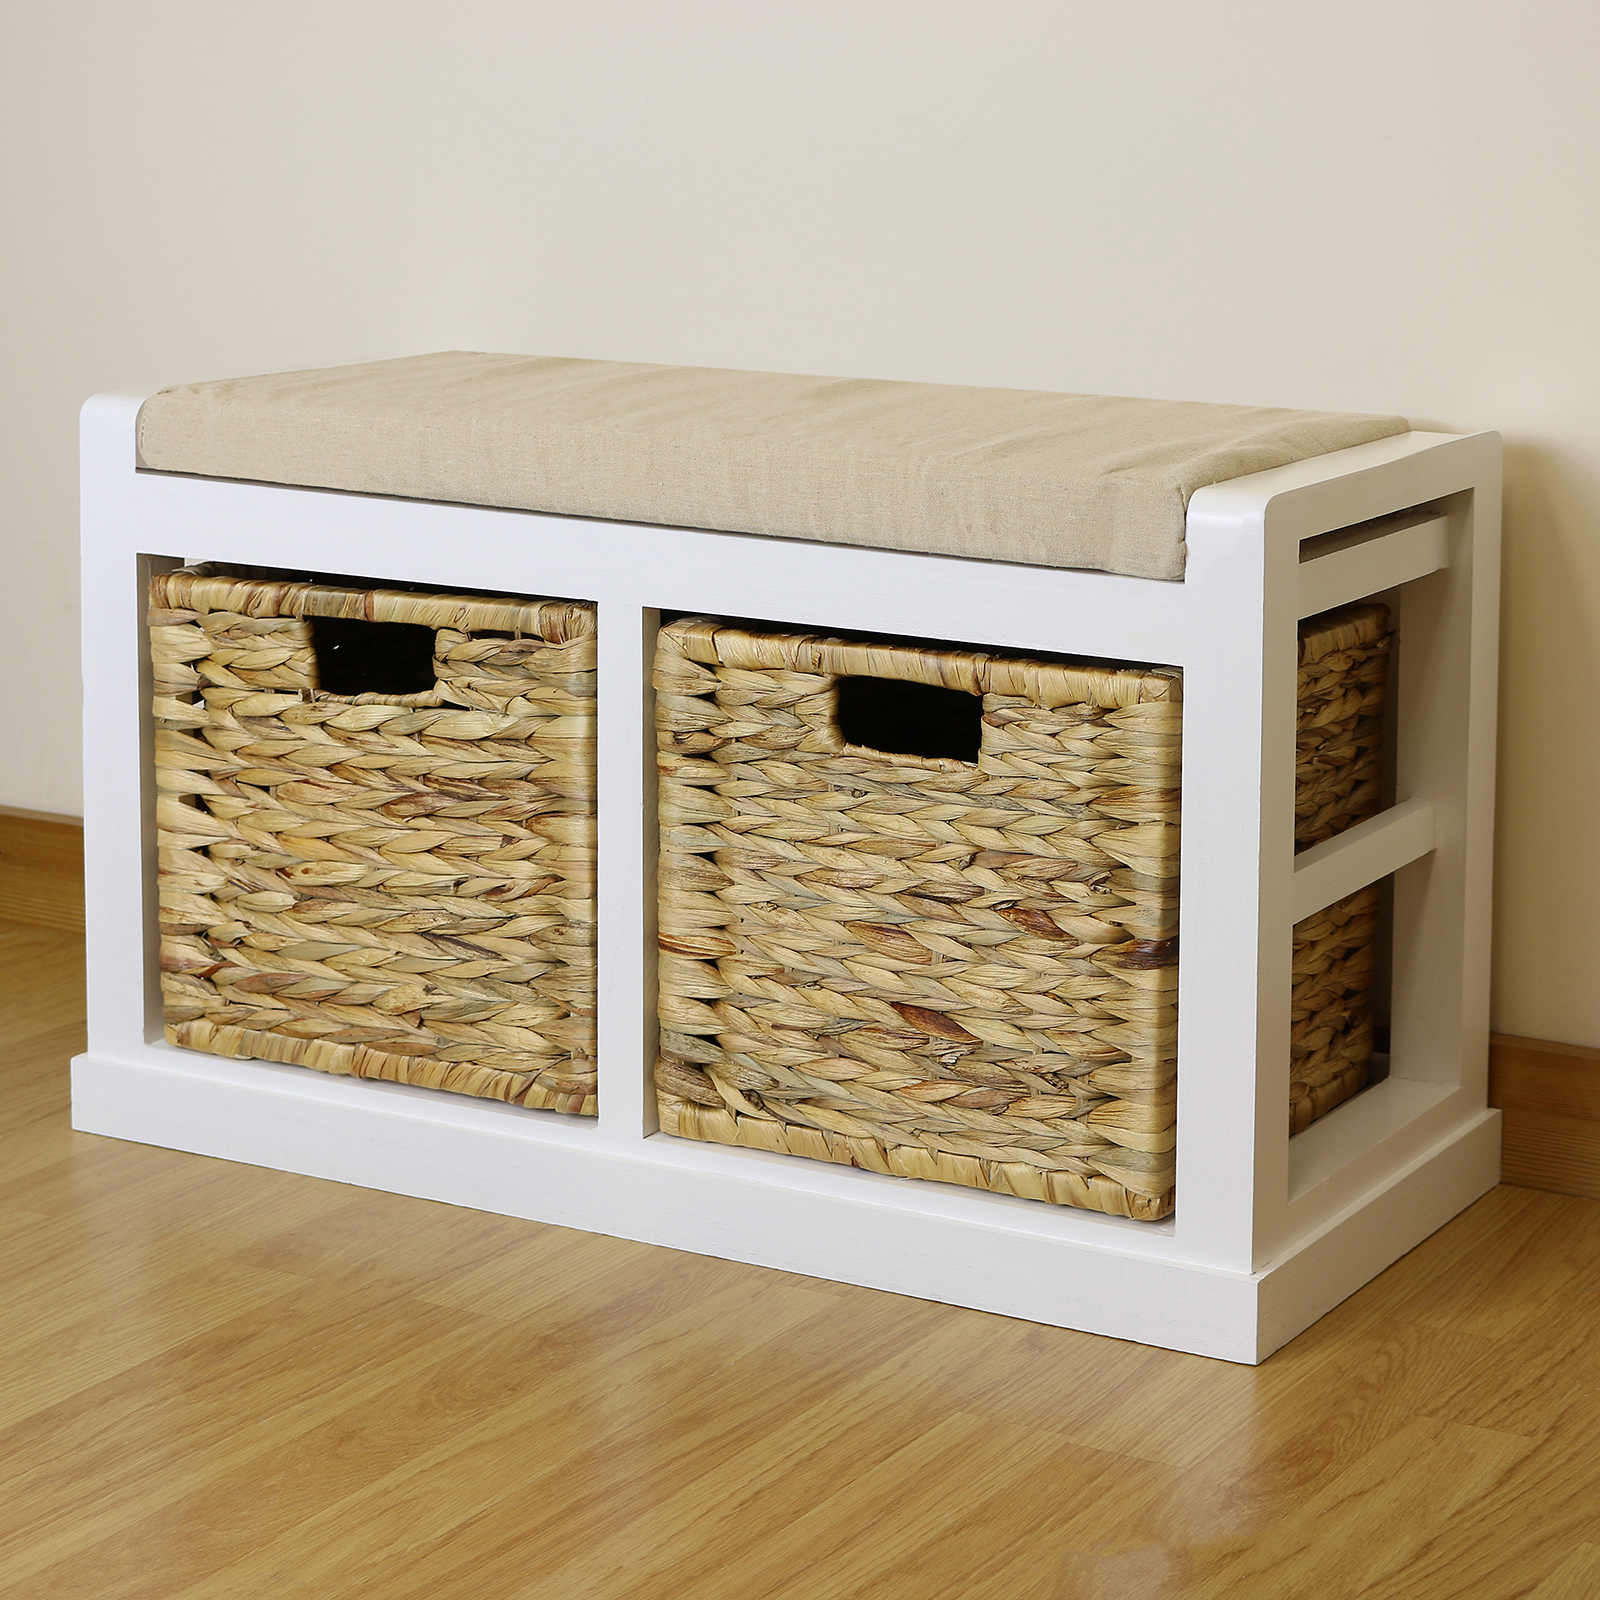 White Hallway Bathroom Shoe Storage Bench Seat Foam Wicker Cushion 2 Baskets Ebay